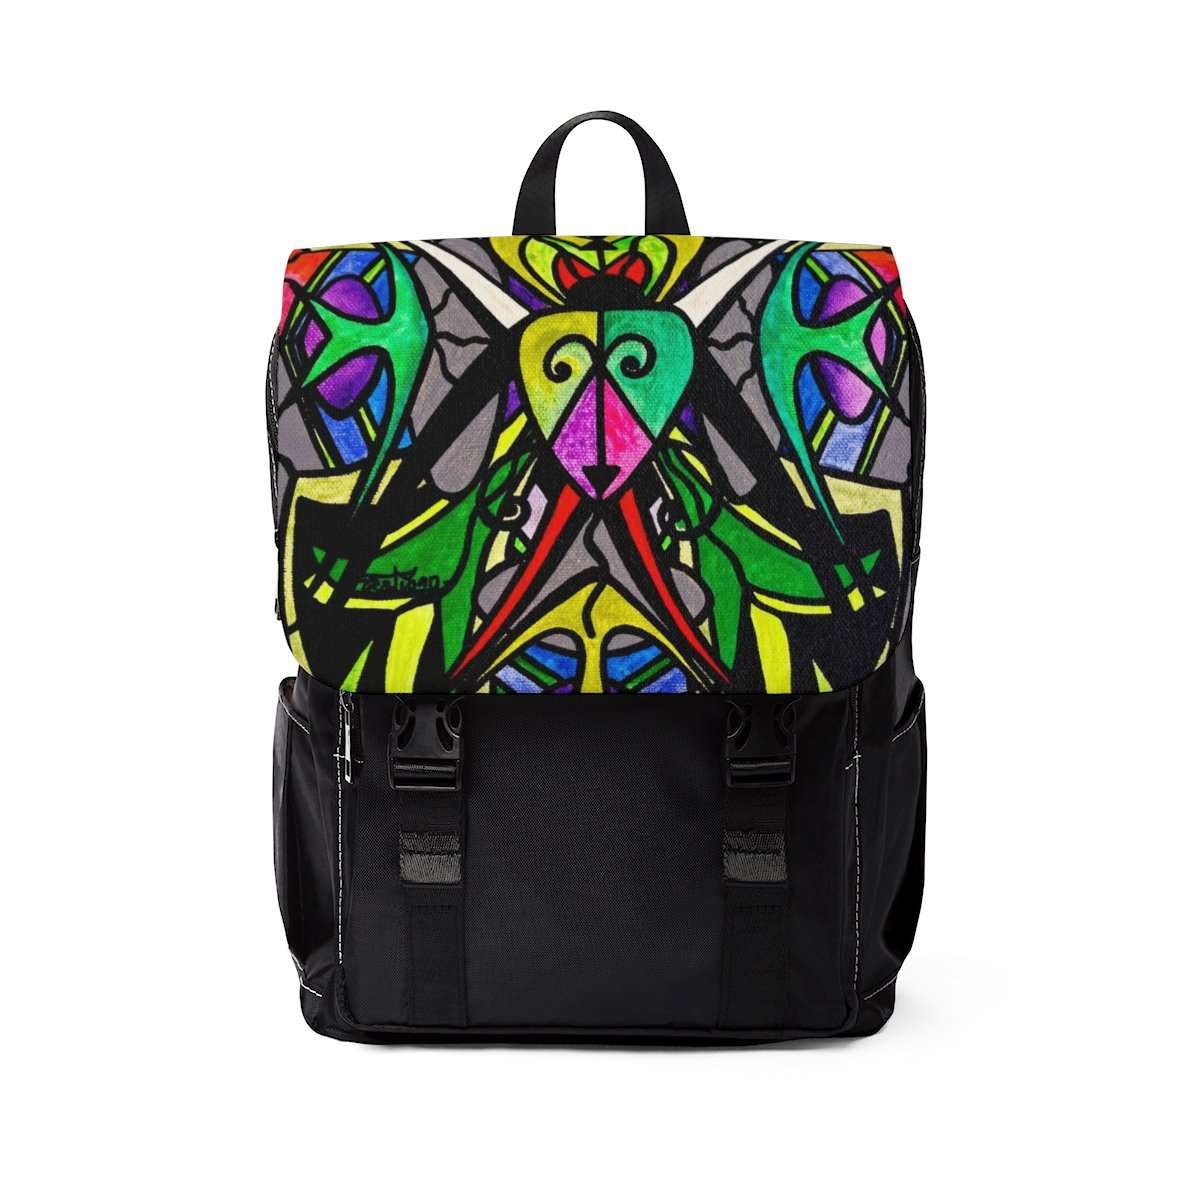 Kambo - Unisex Casual Shoulder Backpack